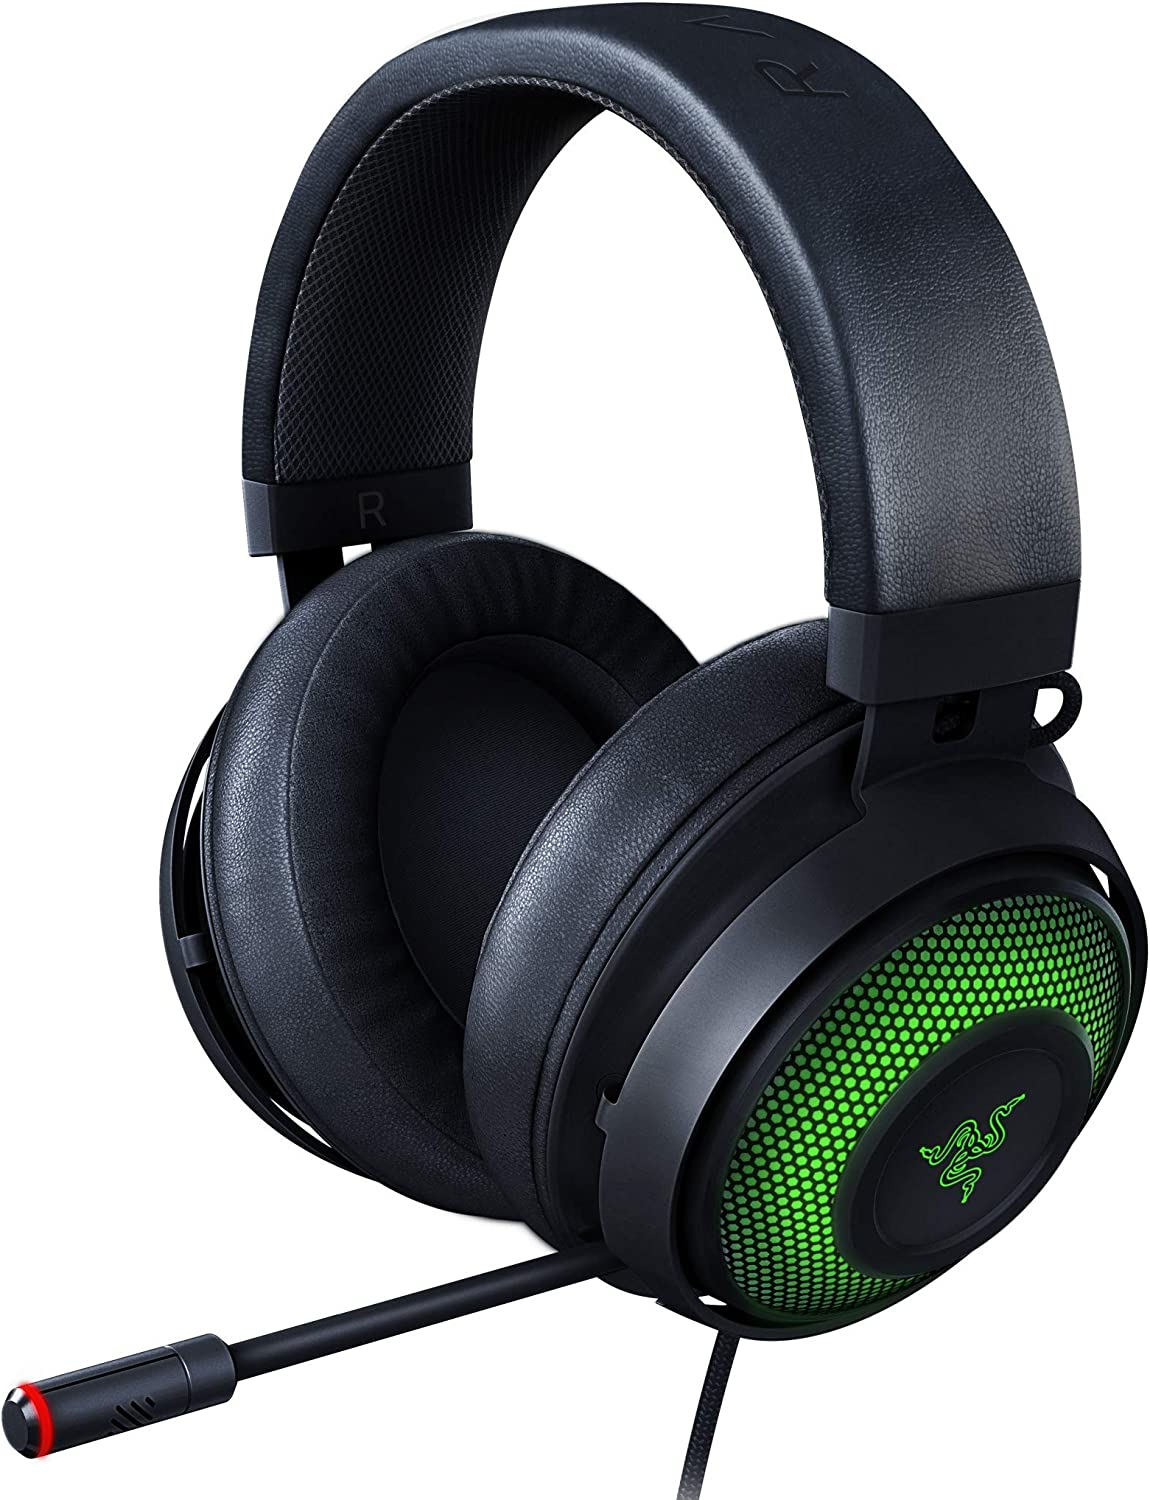 Razer Kraken Ultimate RGB USB Gaming Headset: THX 7.1 Spatial Surround Sound - Chroma RGB Lighting - Retractable Active Noise Cancelling Mic - Aluminum & Steel Frame - for PC - Matte Black